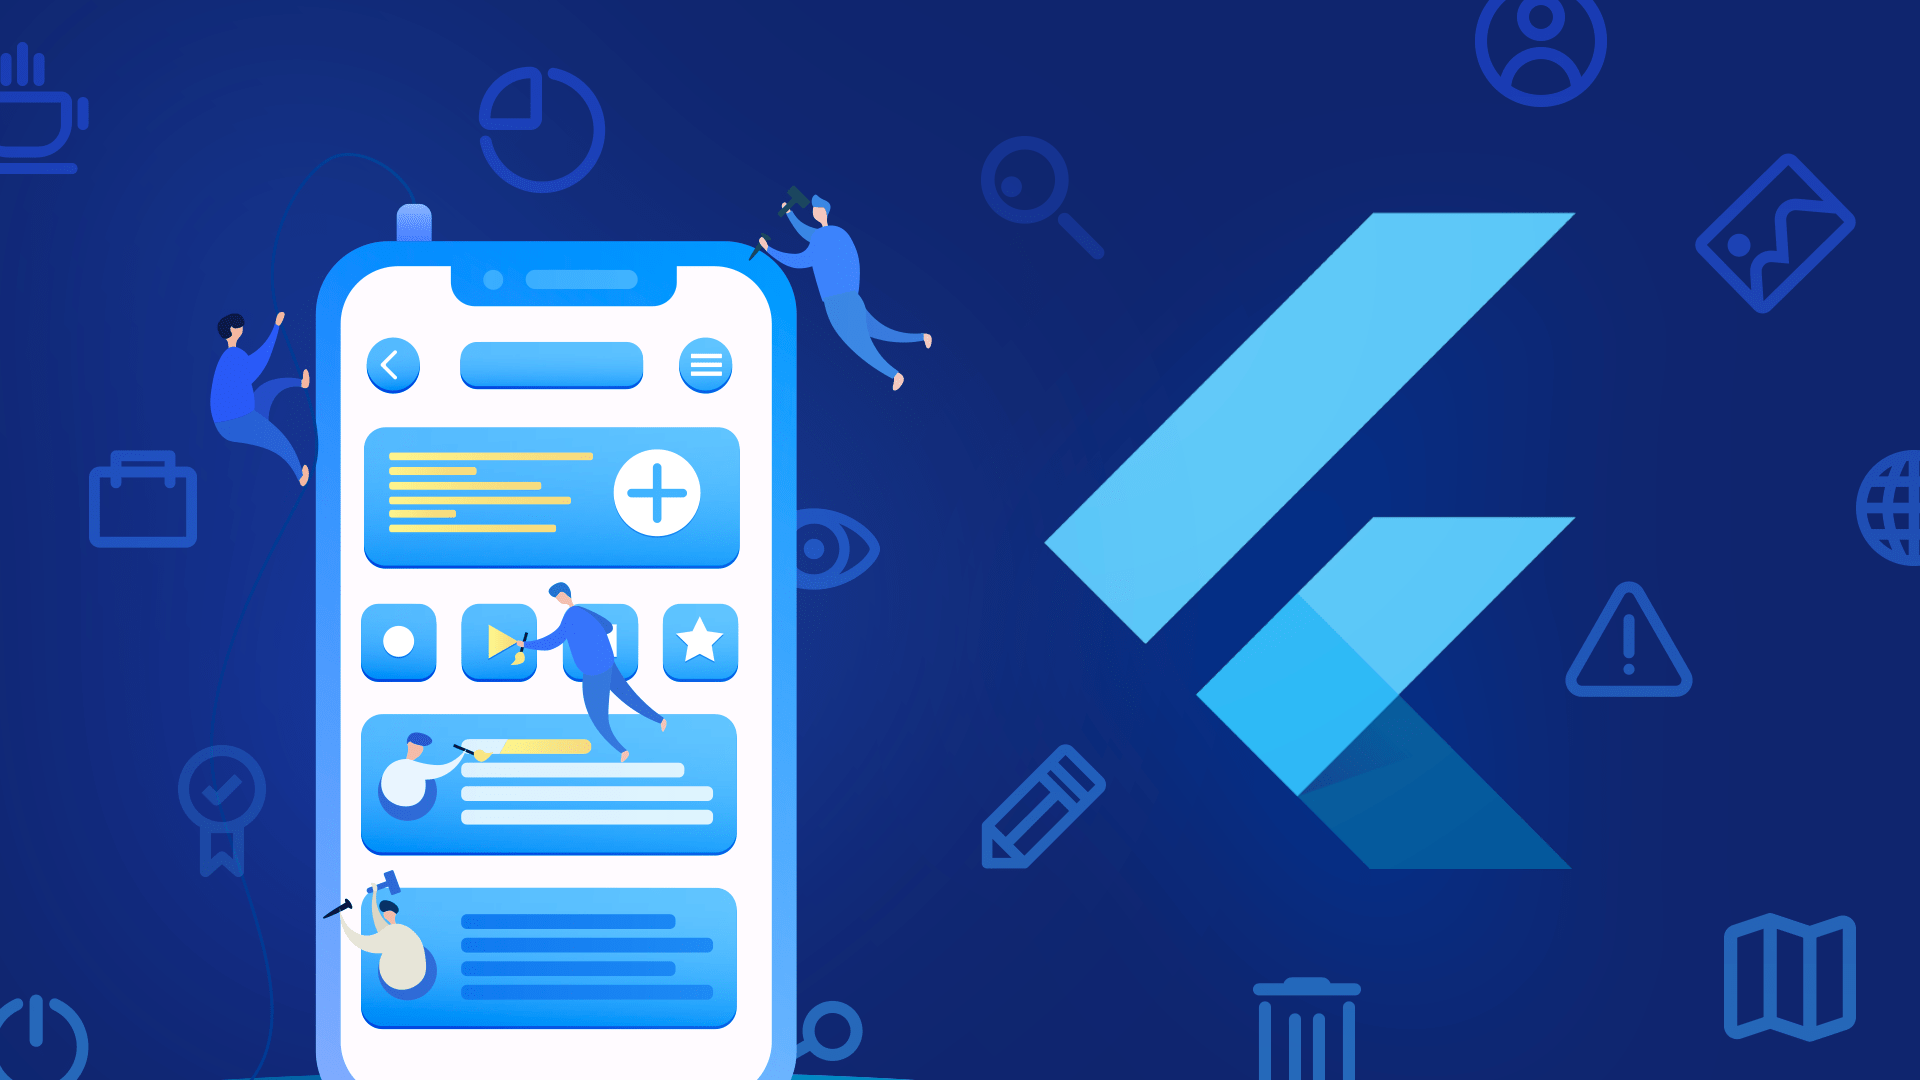 Flutter: Pros and Cons for App Development